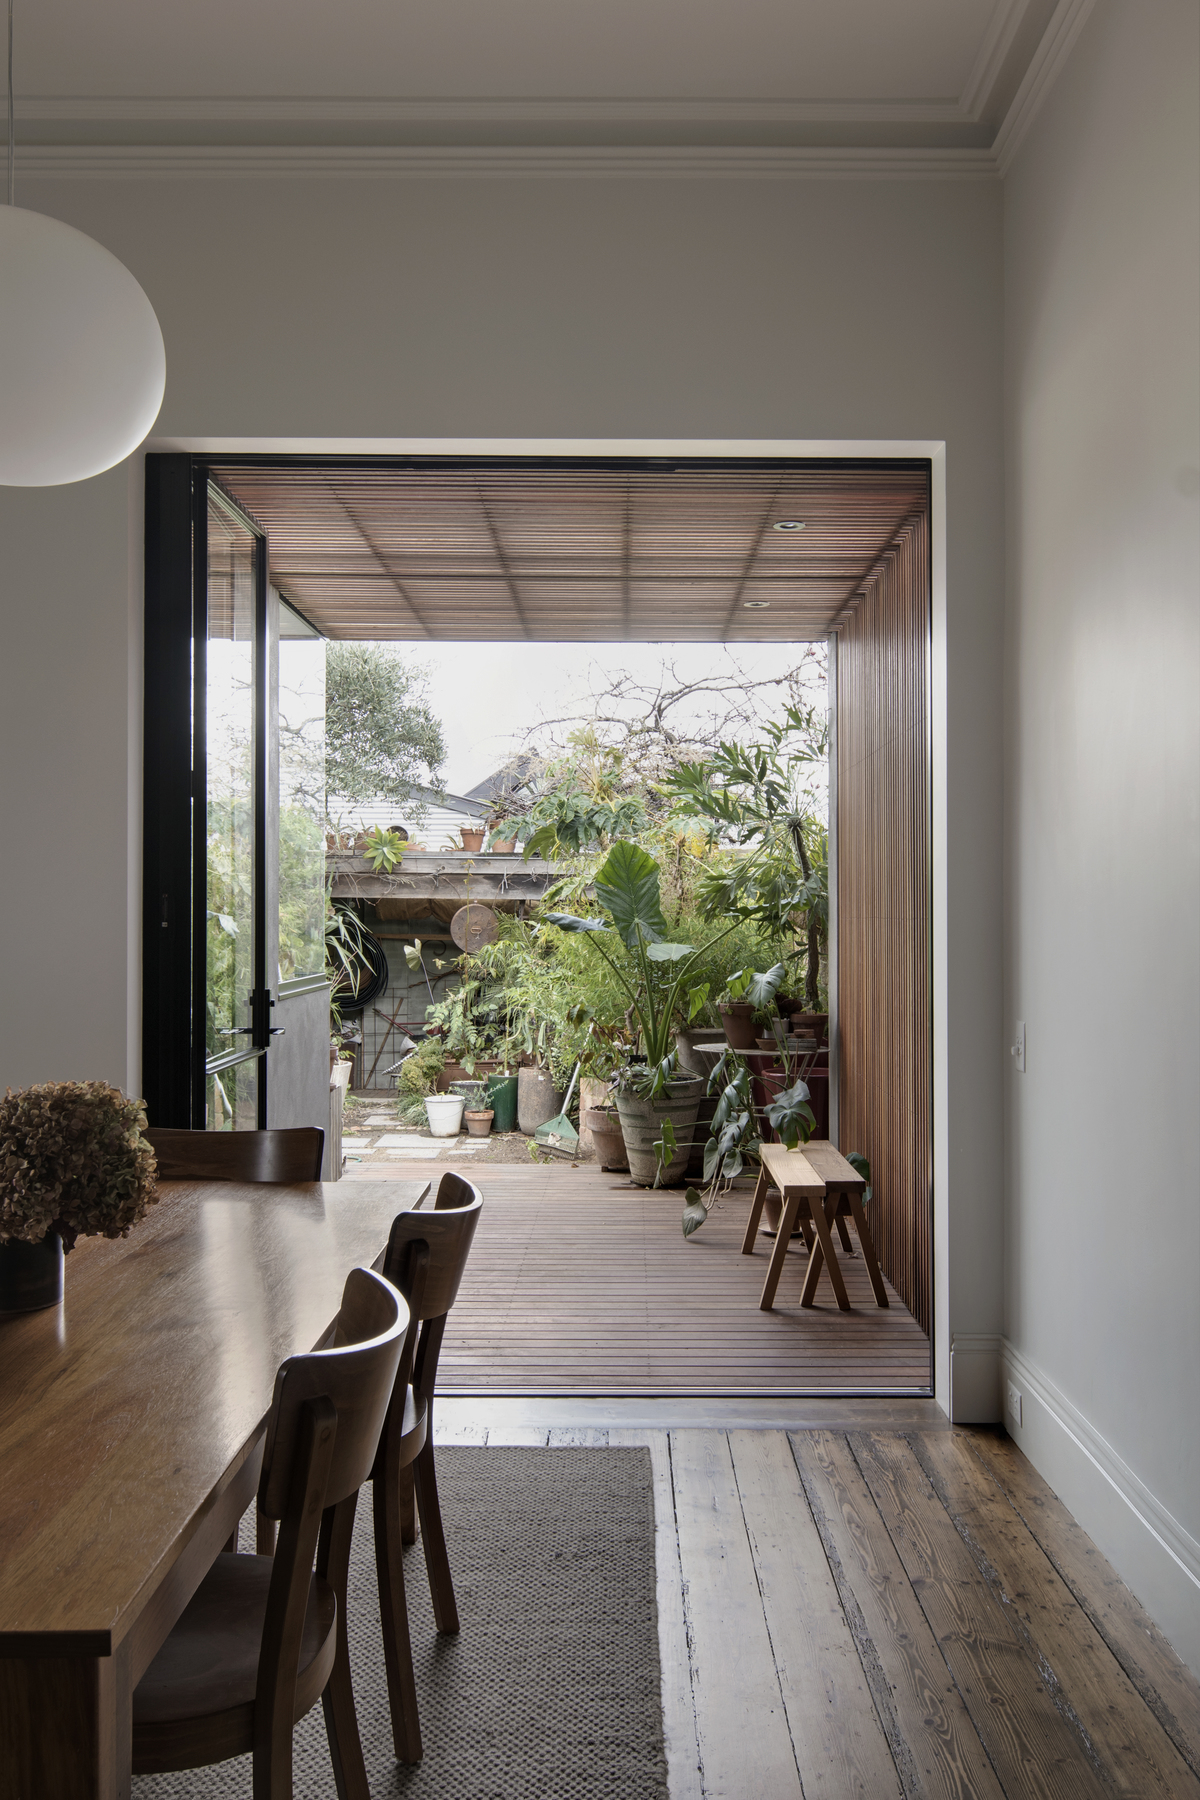 A Minimal Renovation Maximises the Connection to the Outdoors